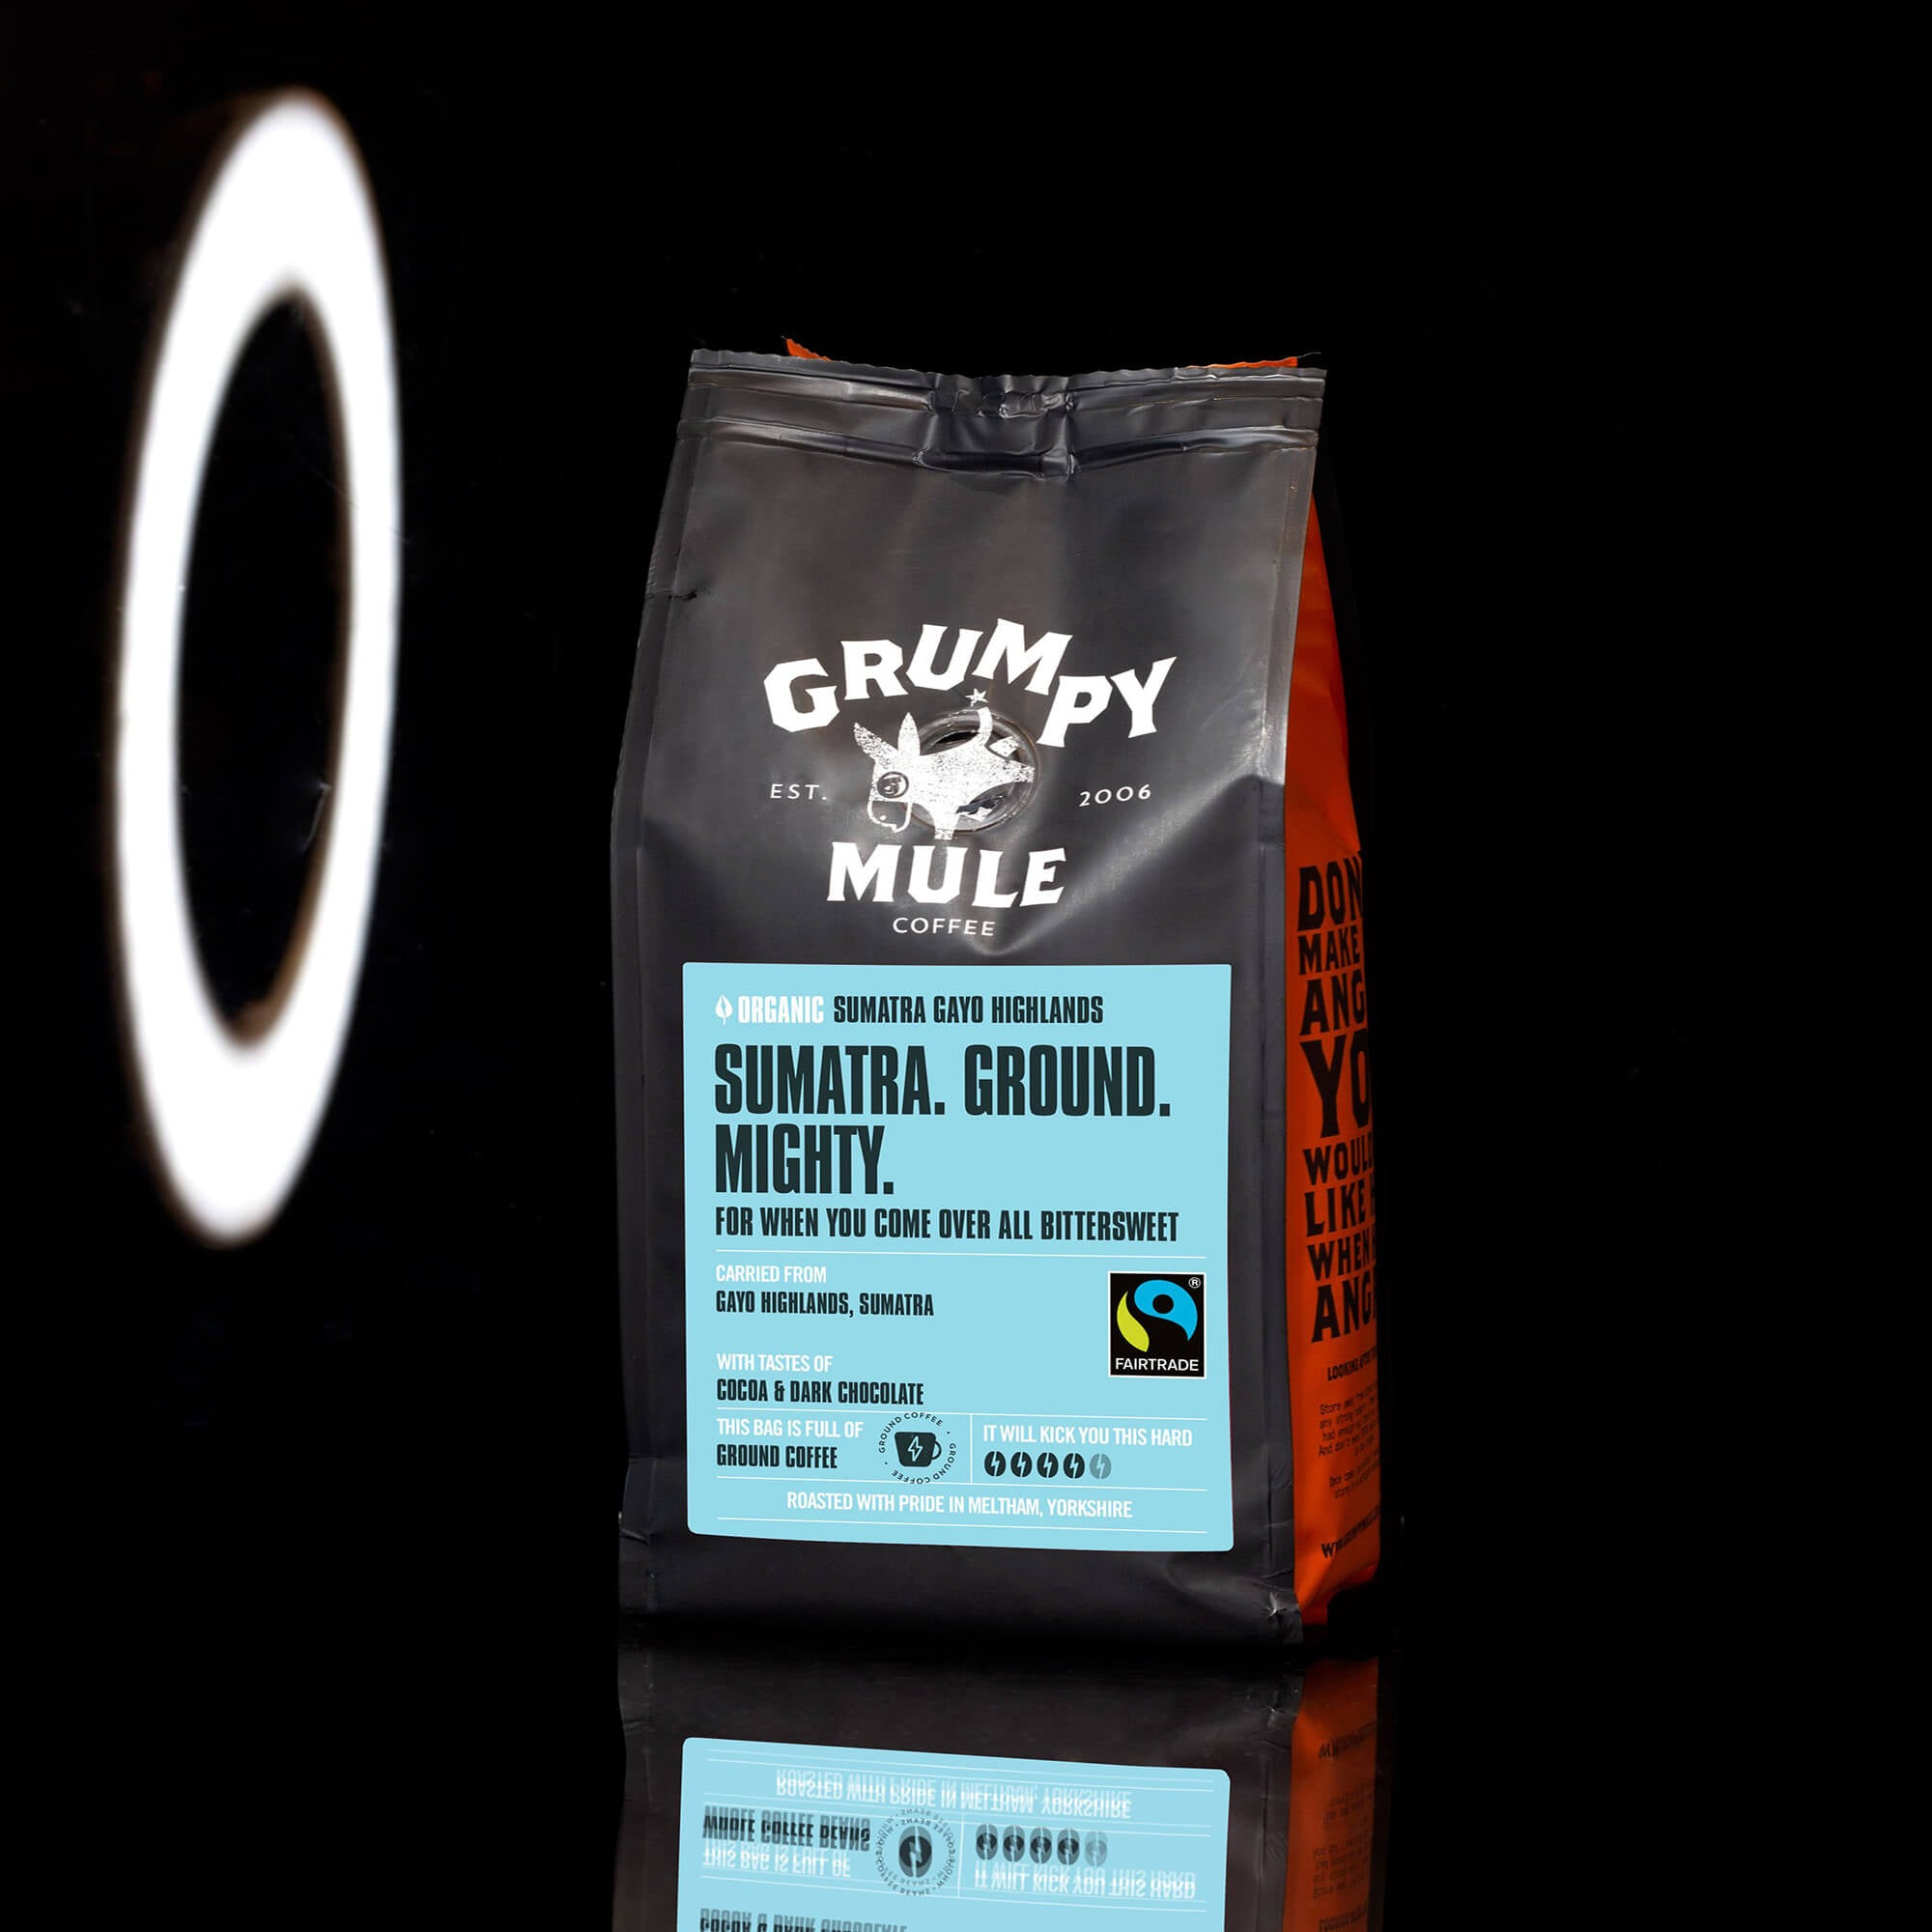 Organic Sumatra Ground Gayo Highlands Ground Coffee - Grumpy Mule